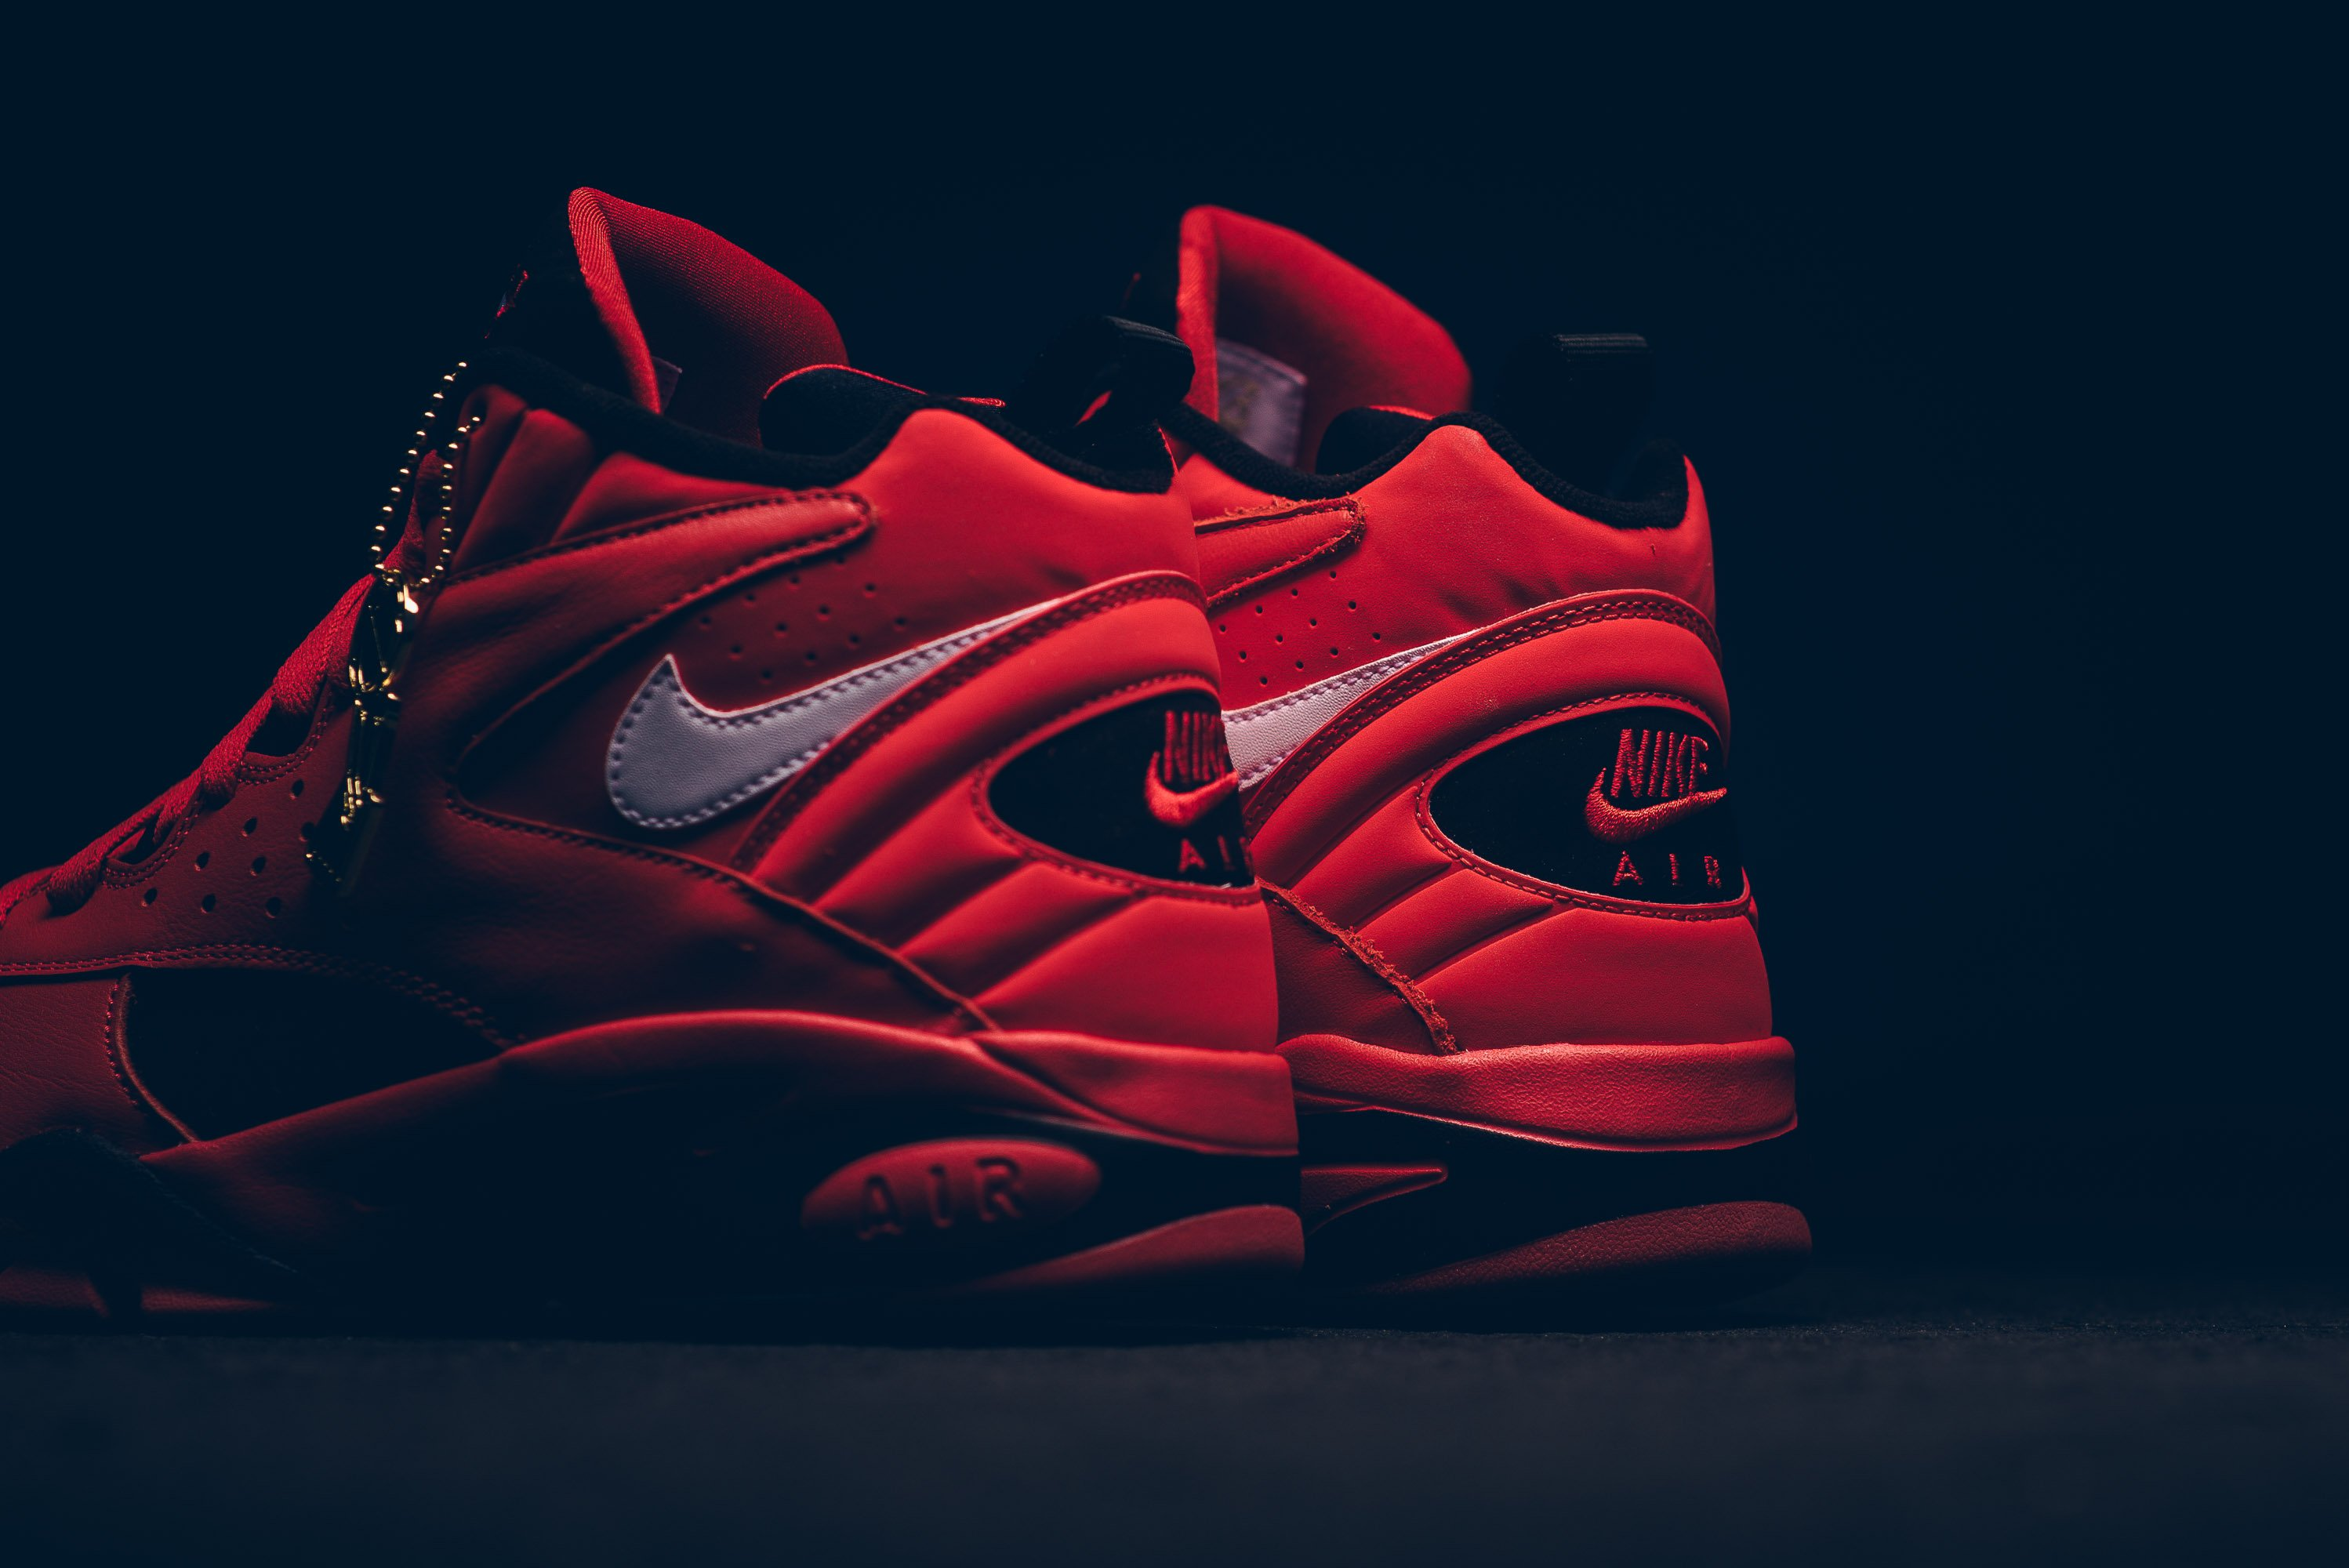 nike_air_maestro_ii_qs_university_red-white-black_aj9281-600_sneaker_politics_3